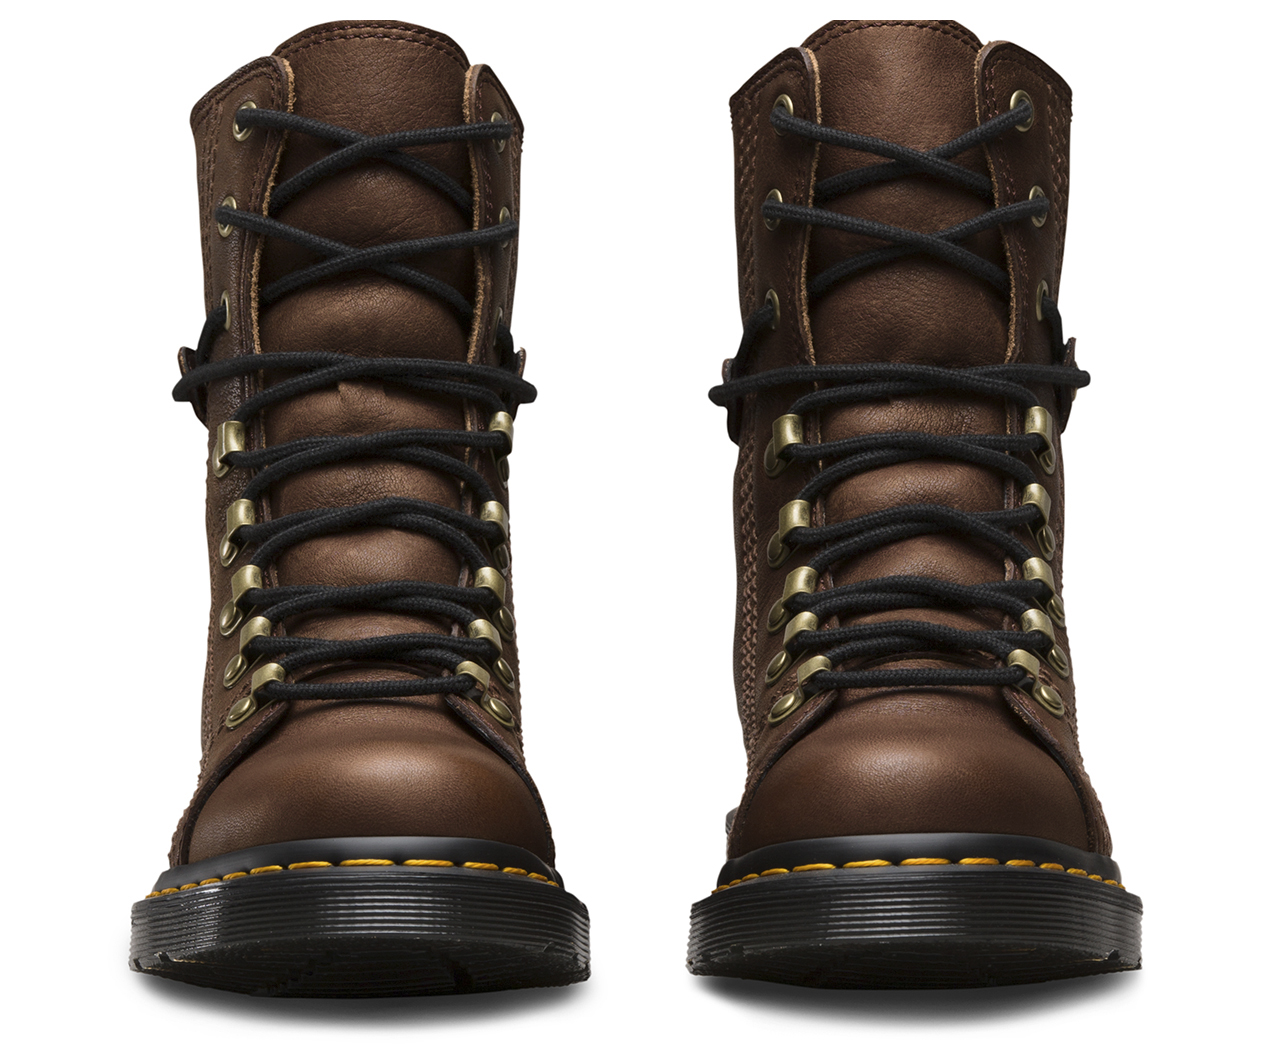 CORALINE GRIZZLY | Grizzly Leather Boots and Shoes | Official Dr ...